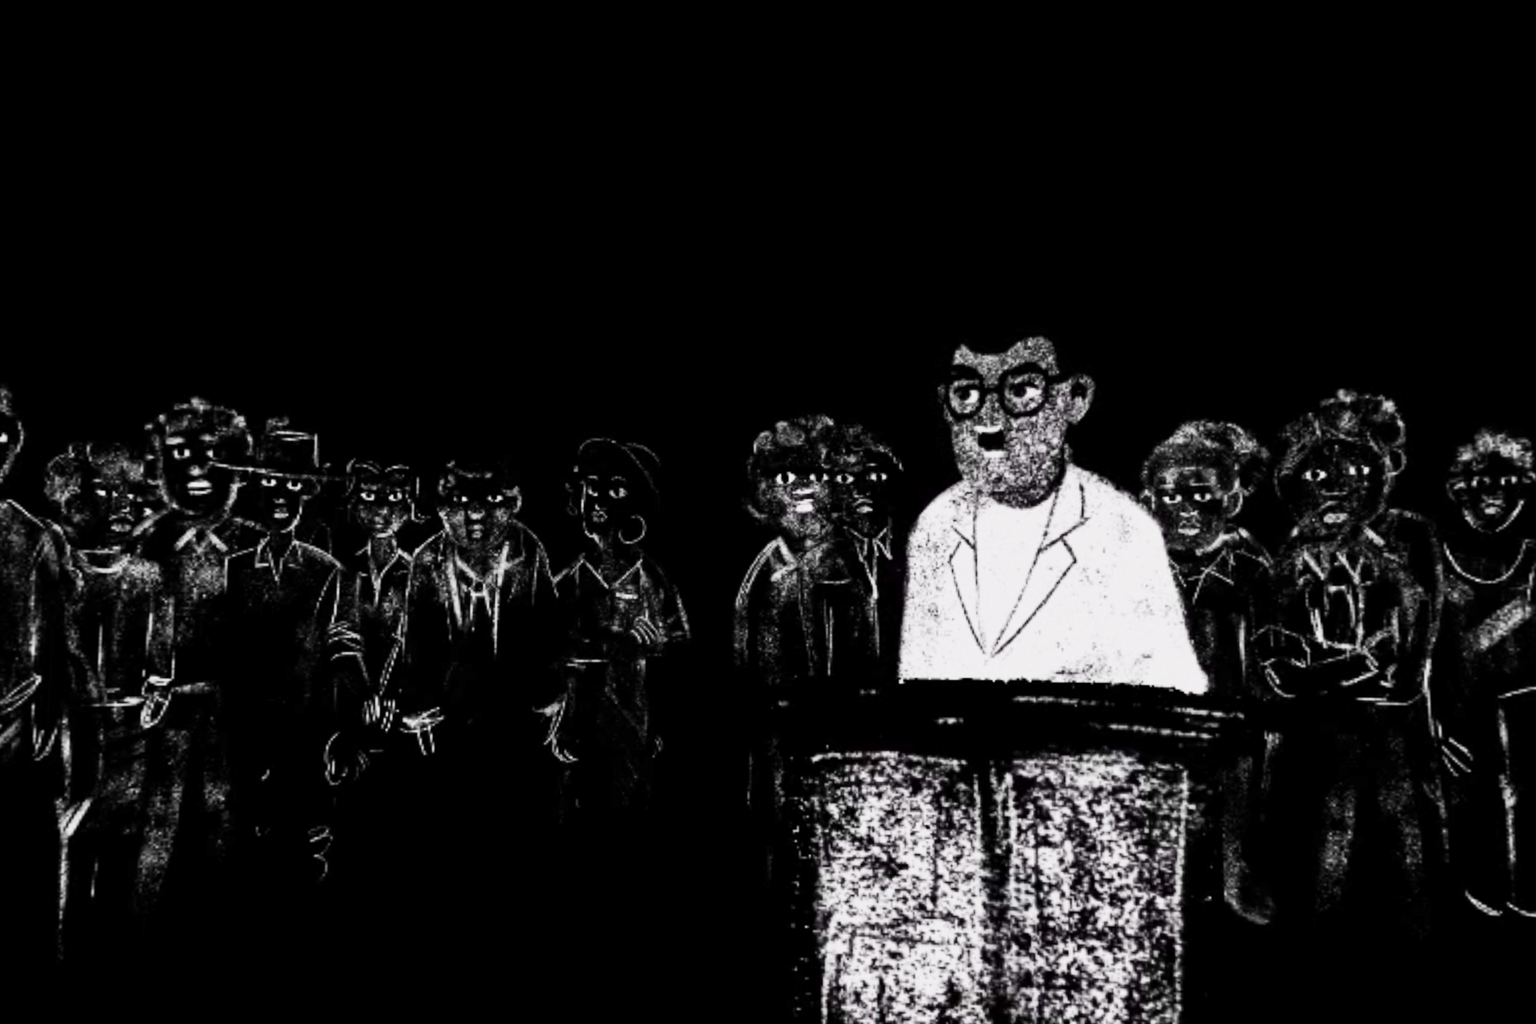 Black and white drawings in chalk and charcoal make a good visual match for the grainy, scratchy quality of the audio recordings from the Rivonia Trial. Depicted here, Walter Sisulu takes the stand.